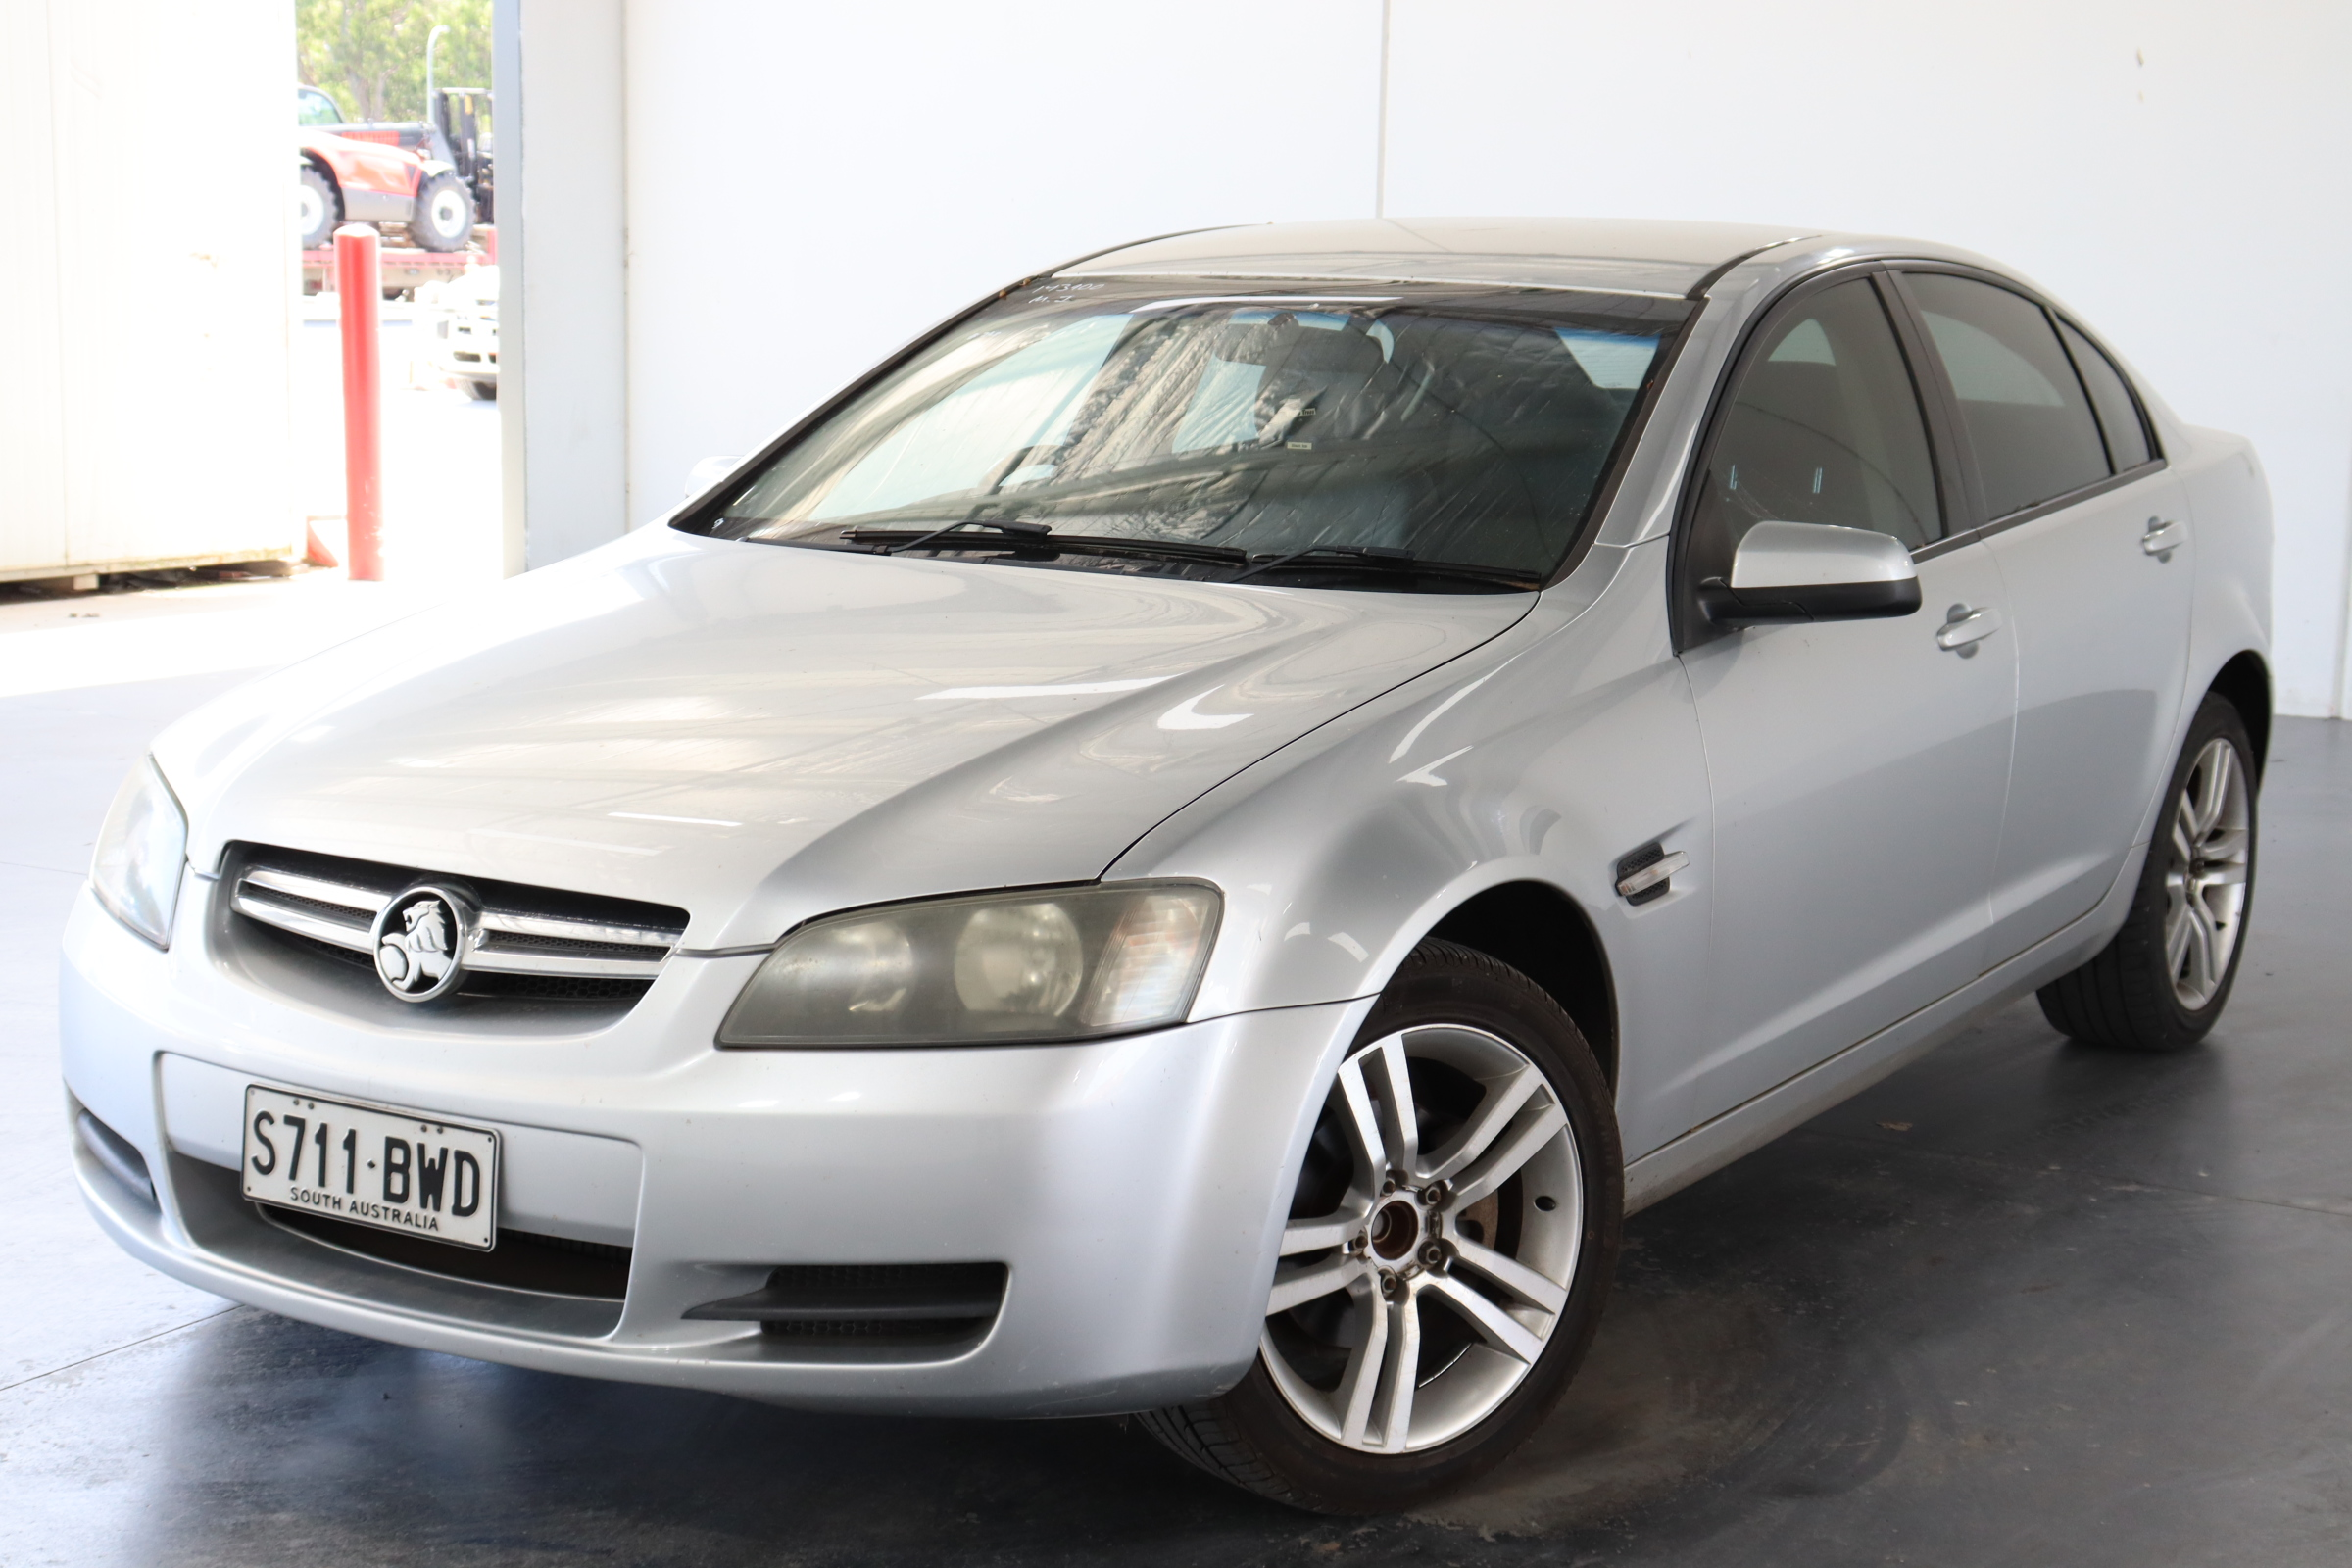 2008 Holden Commodore Omega VE Automatic Sedan